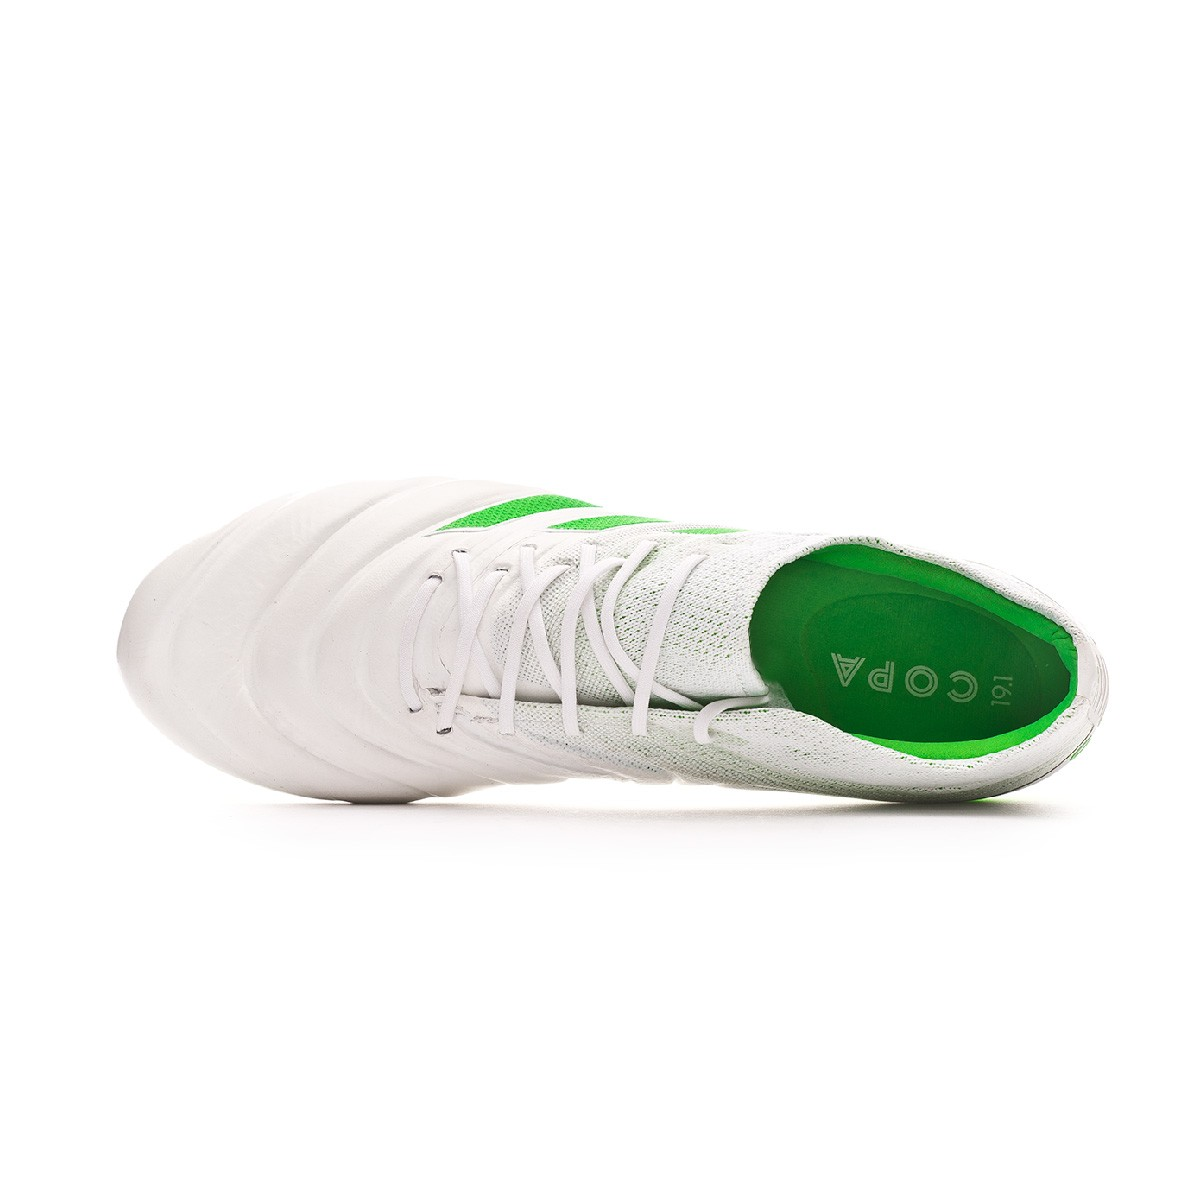 aacf9c834 Football Boots adidas Copa 19.1 FG White-Solar lime - Football store Fútbol  Emotion